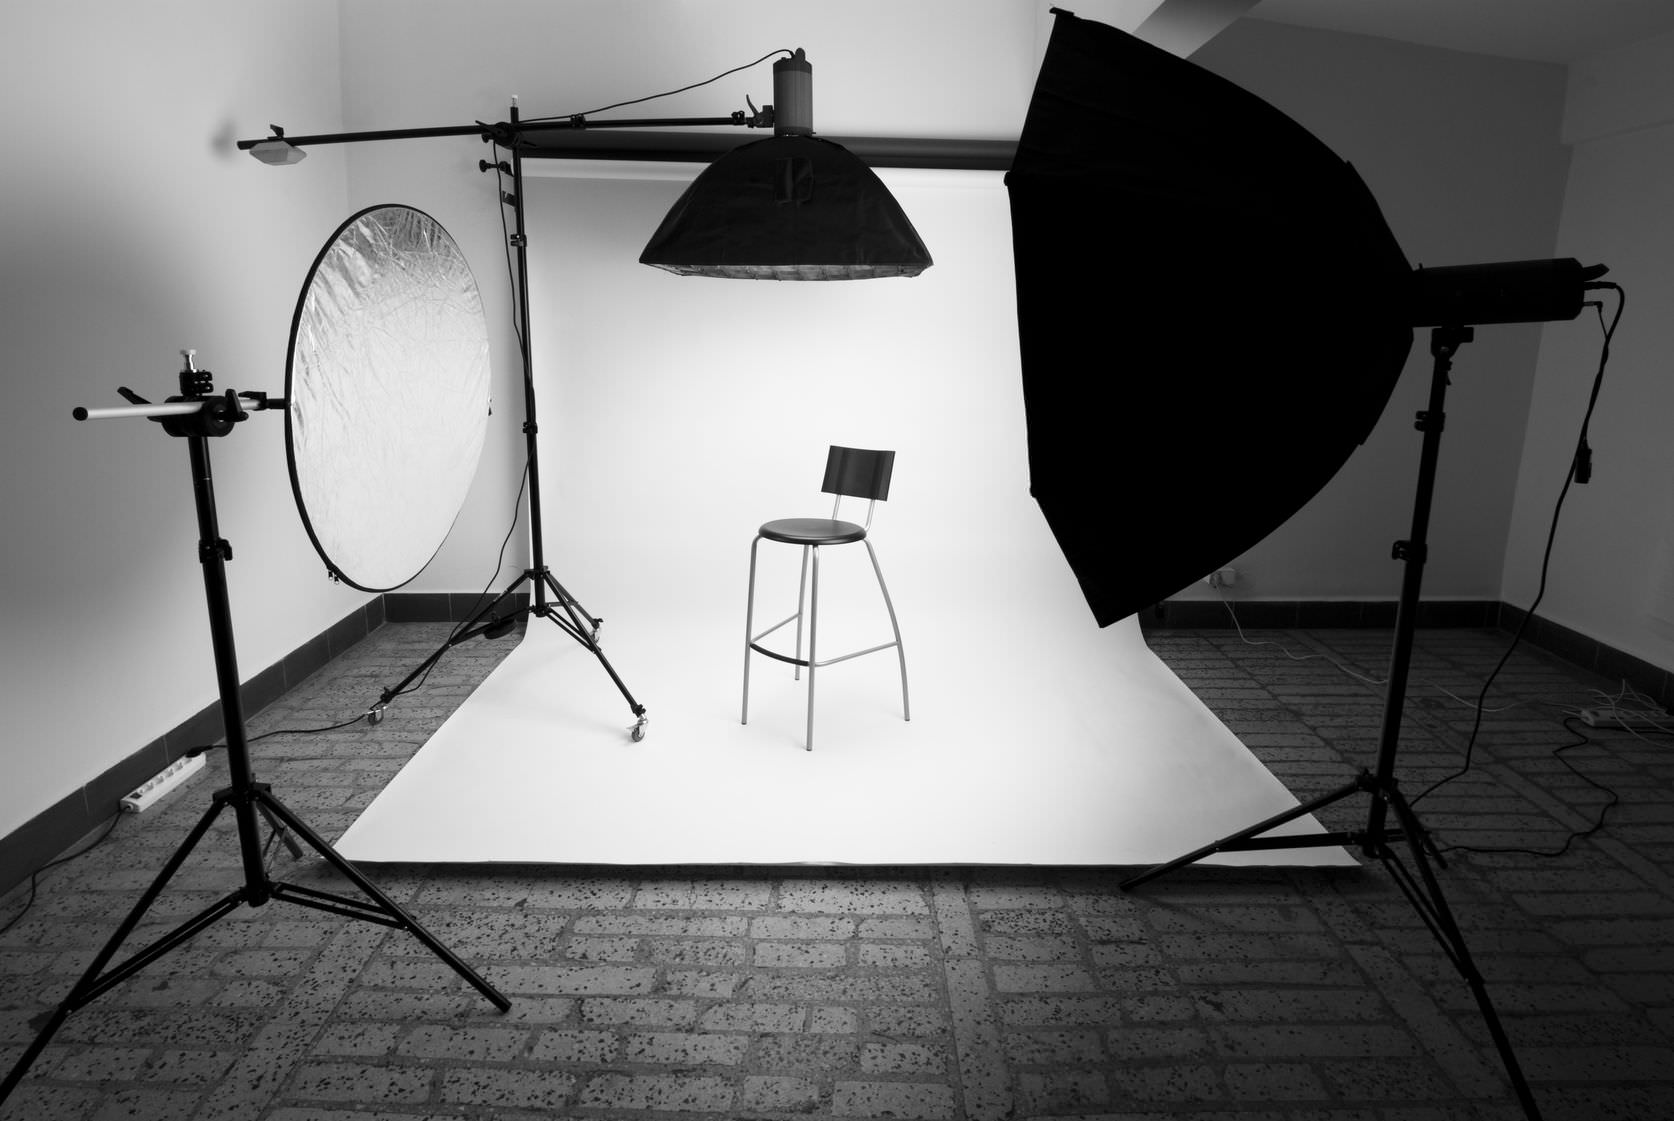 Setting up a photography studio requires some wise investments. Here are the best choices for three different budgets. image